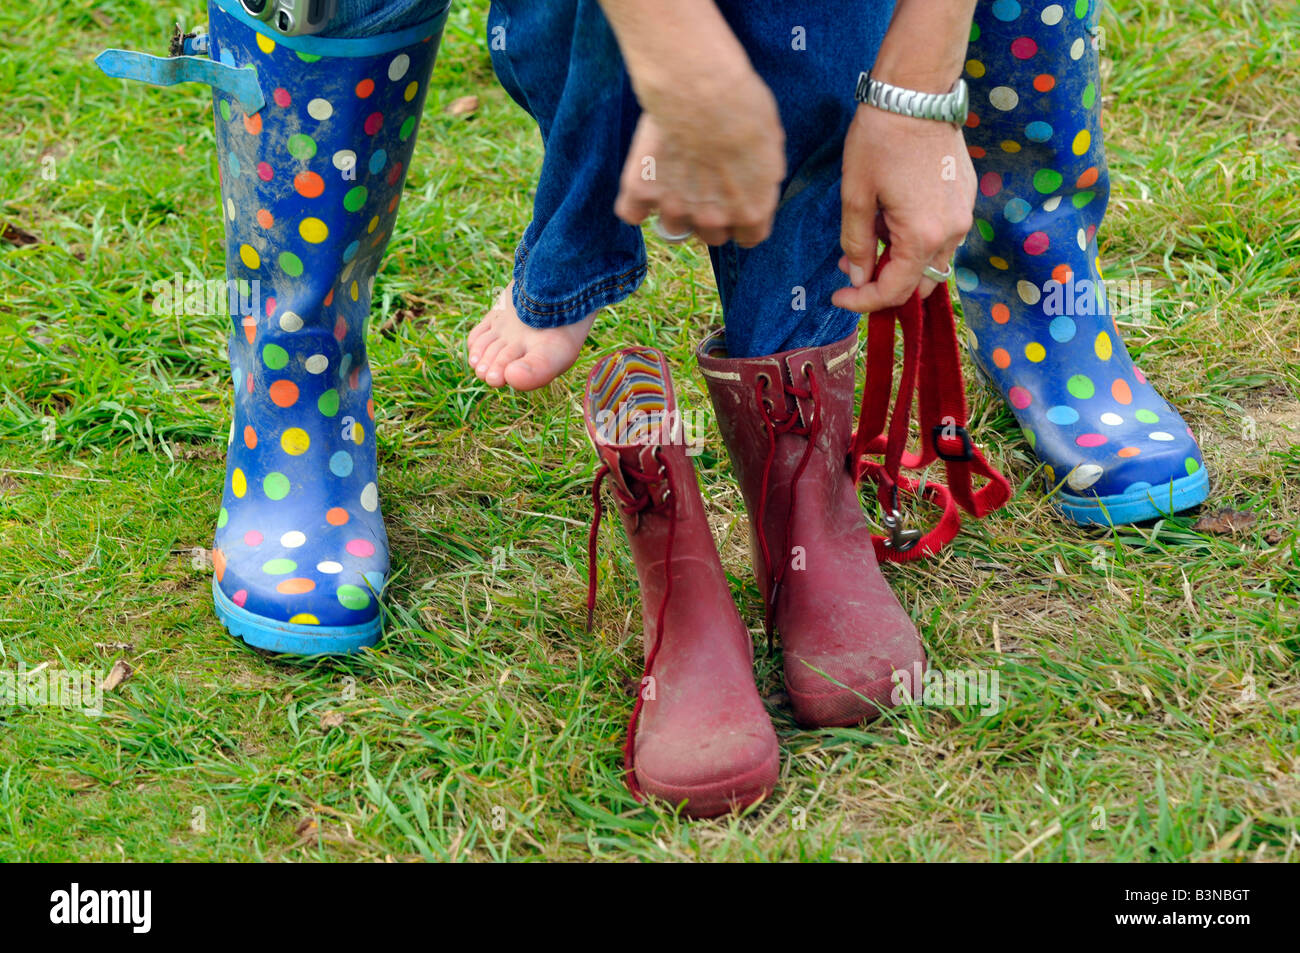 mother trying to put shoes boots on child wellies mother and child struggling to get child children dressed - Stock Image